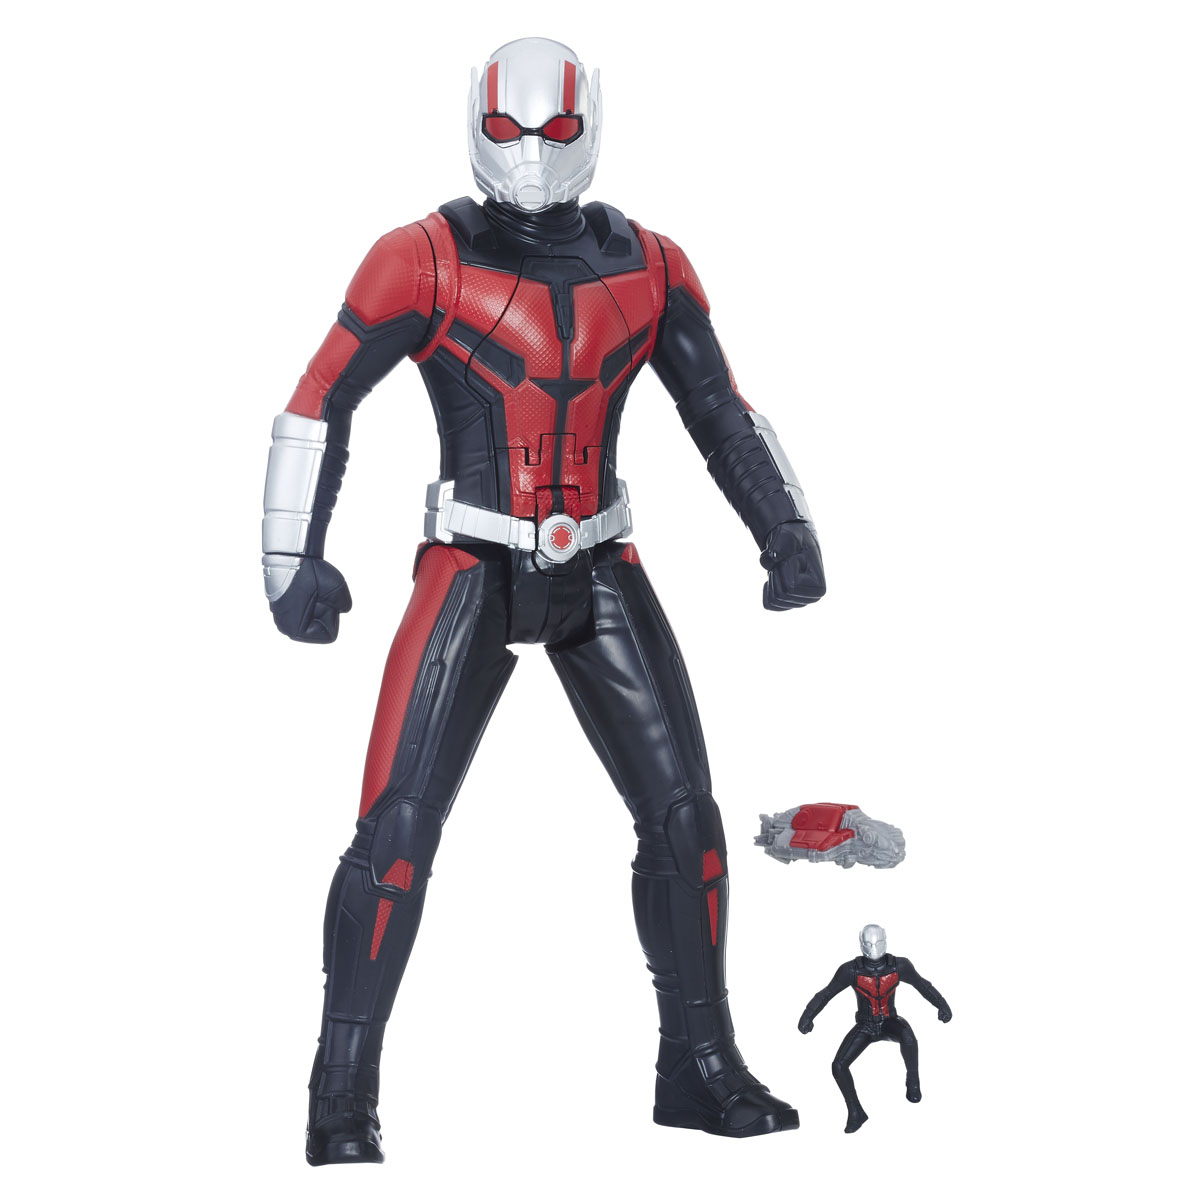 Ant-Man and the Wasp Toys